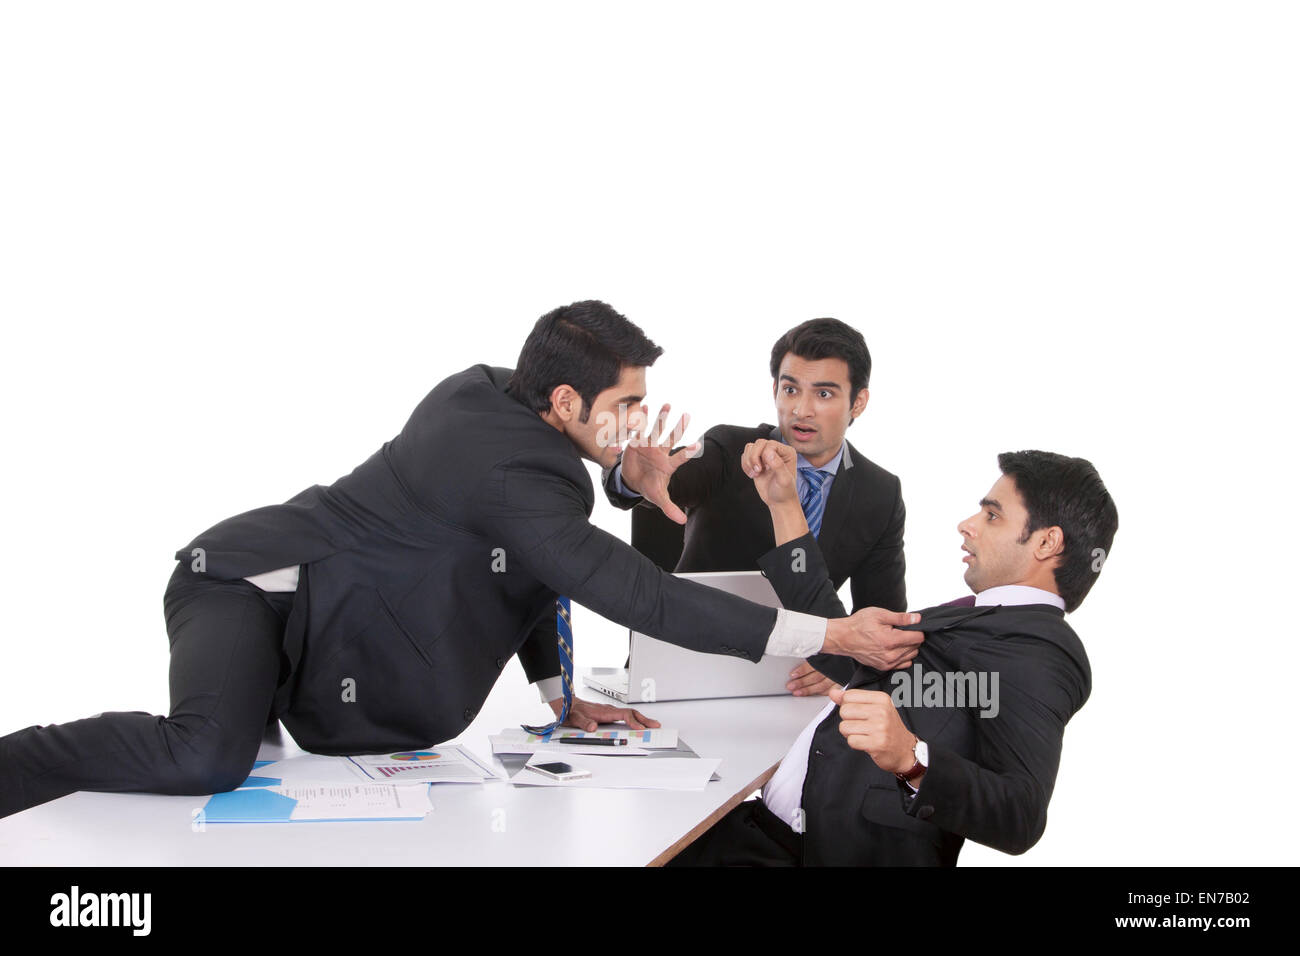 Businessman getting violent with fellow businessman - Stock Image